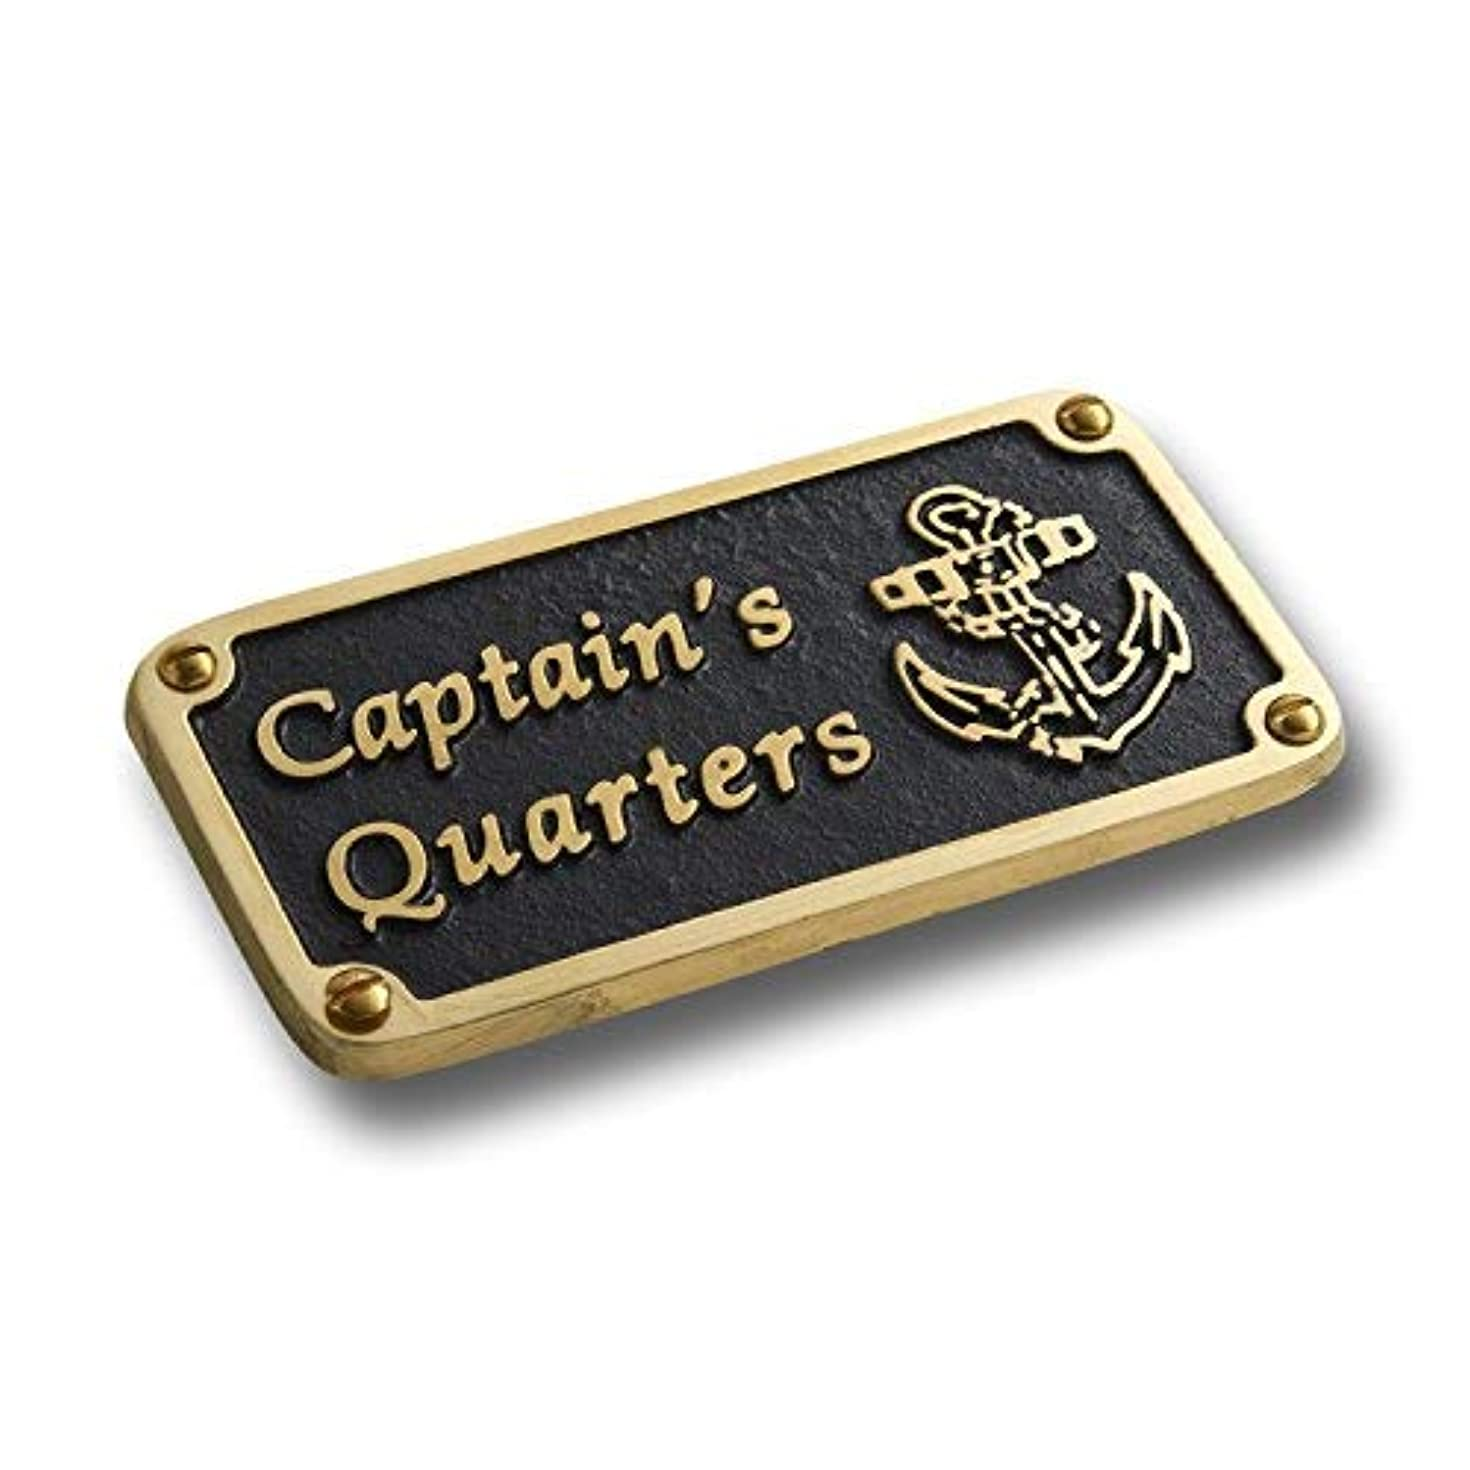 The Metal Foundry Nautical Bathroom Décor Accessories Brass Plaque. Beach Theme Funny Wall Decoration Captain's Quarters Sign